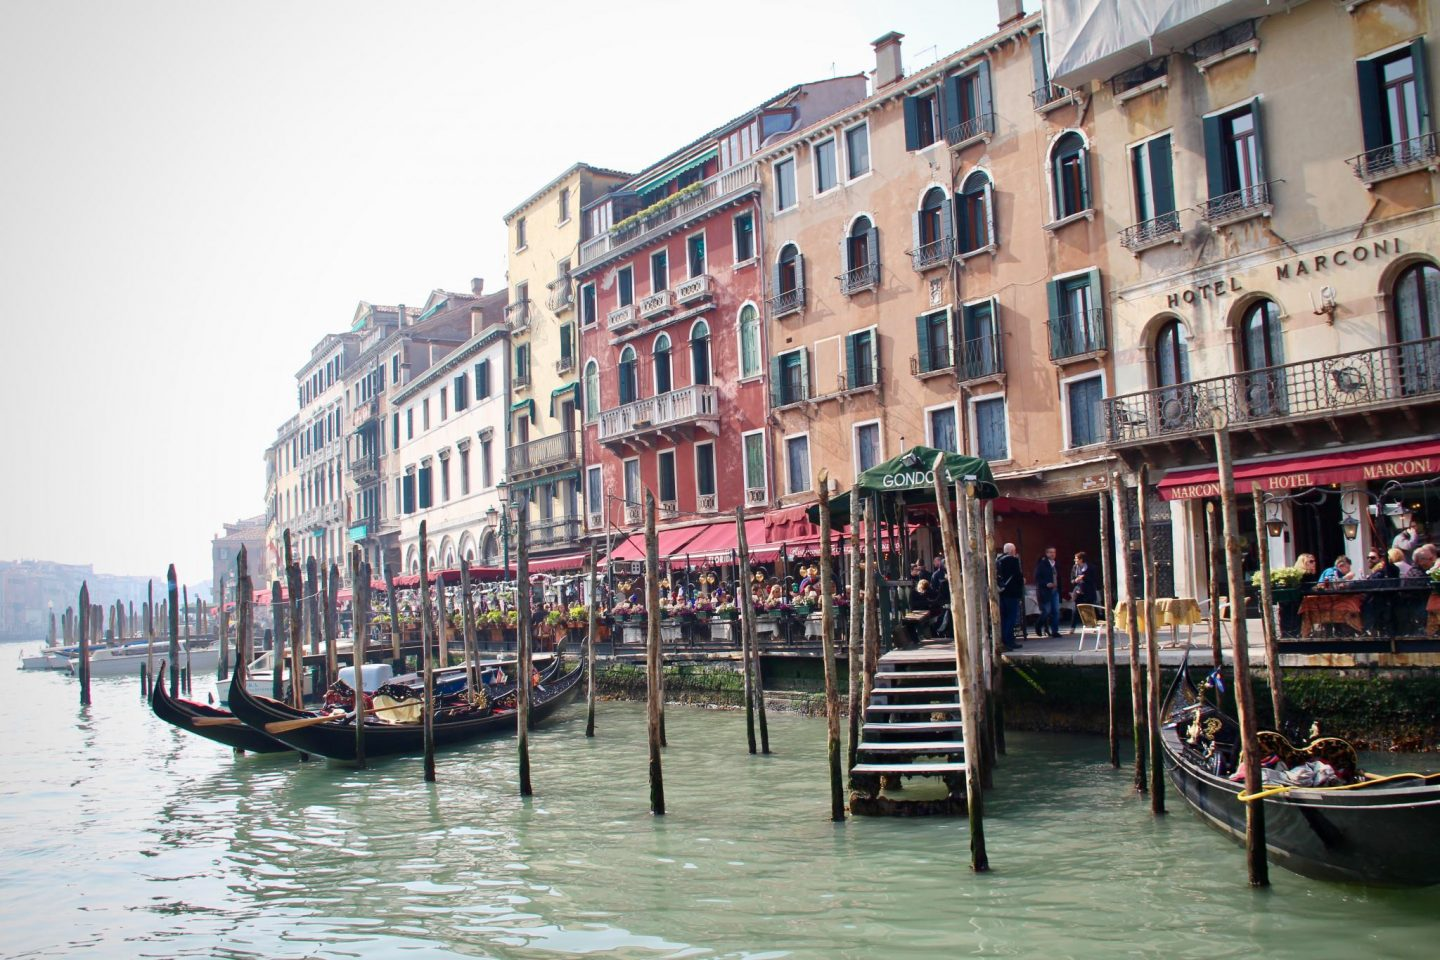 Grand Canal Gondola Ride in Venice - The Spectacular Adventurer